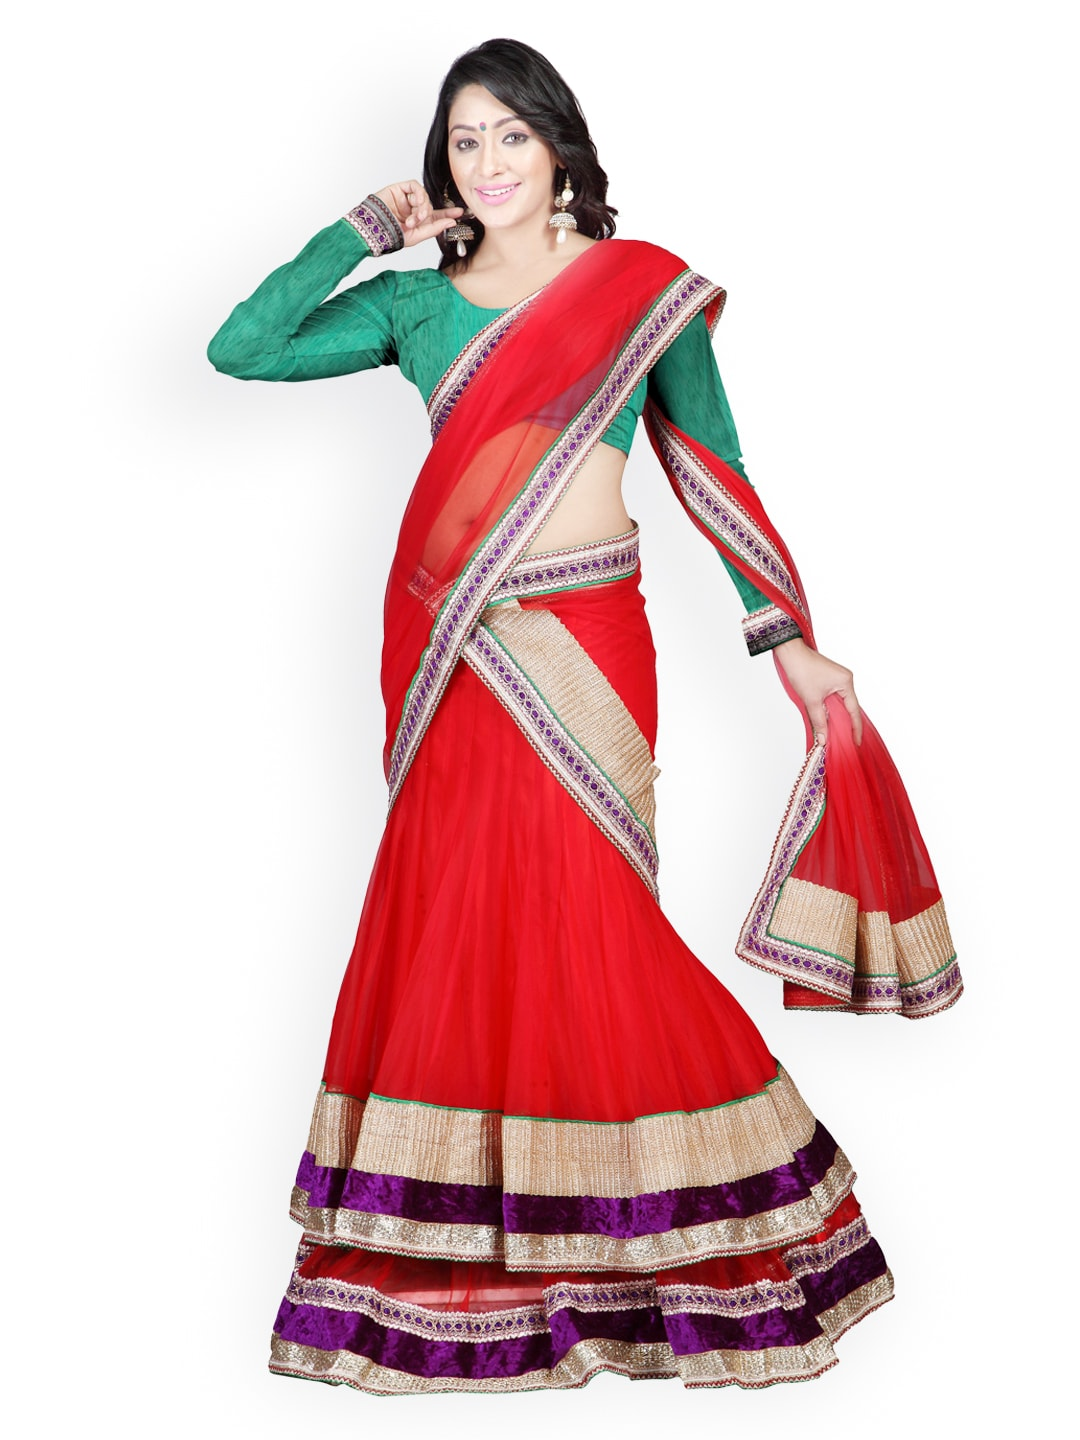 Florence Red Embroidered Georgette Semi-Stitched Lehenga Choli Material with Dupatta